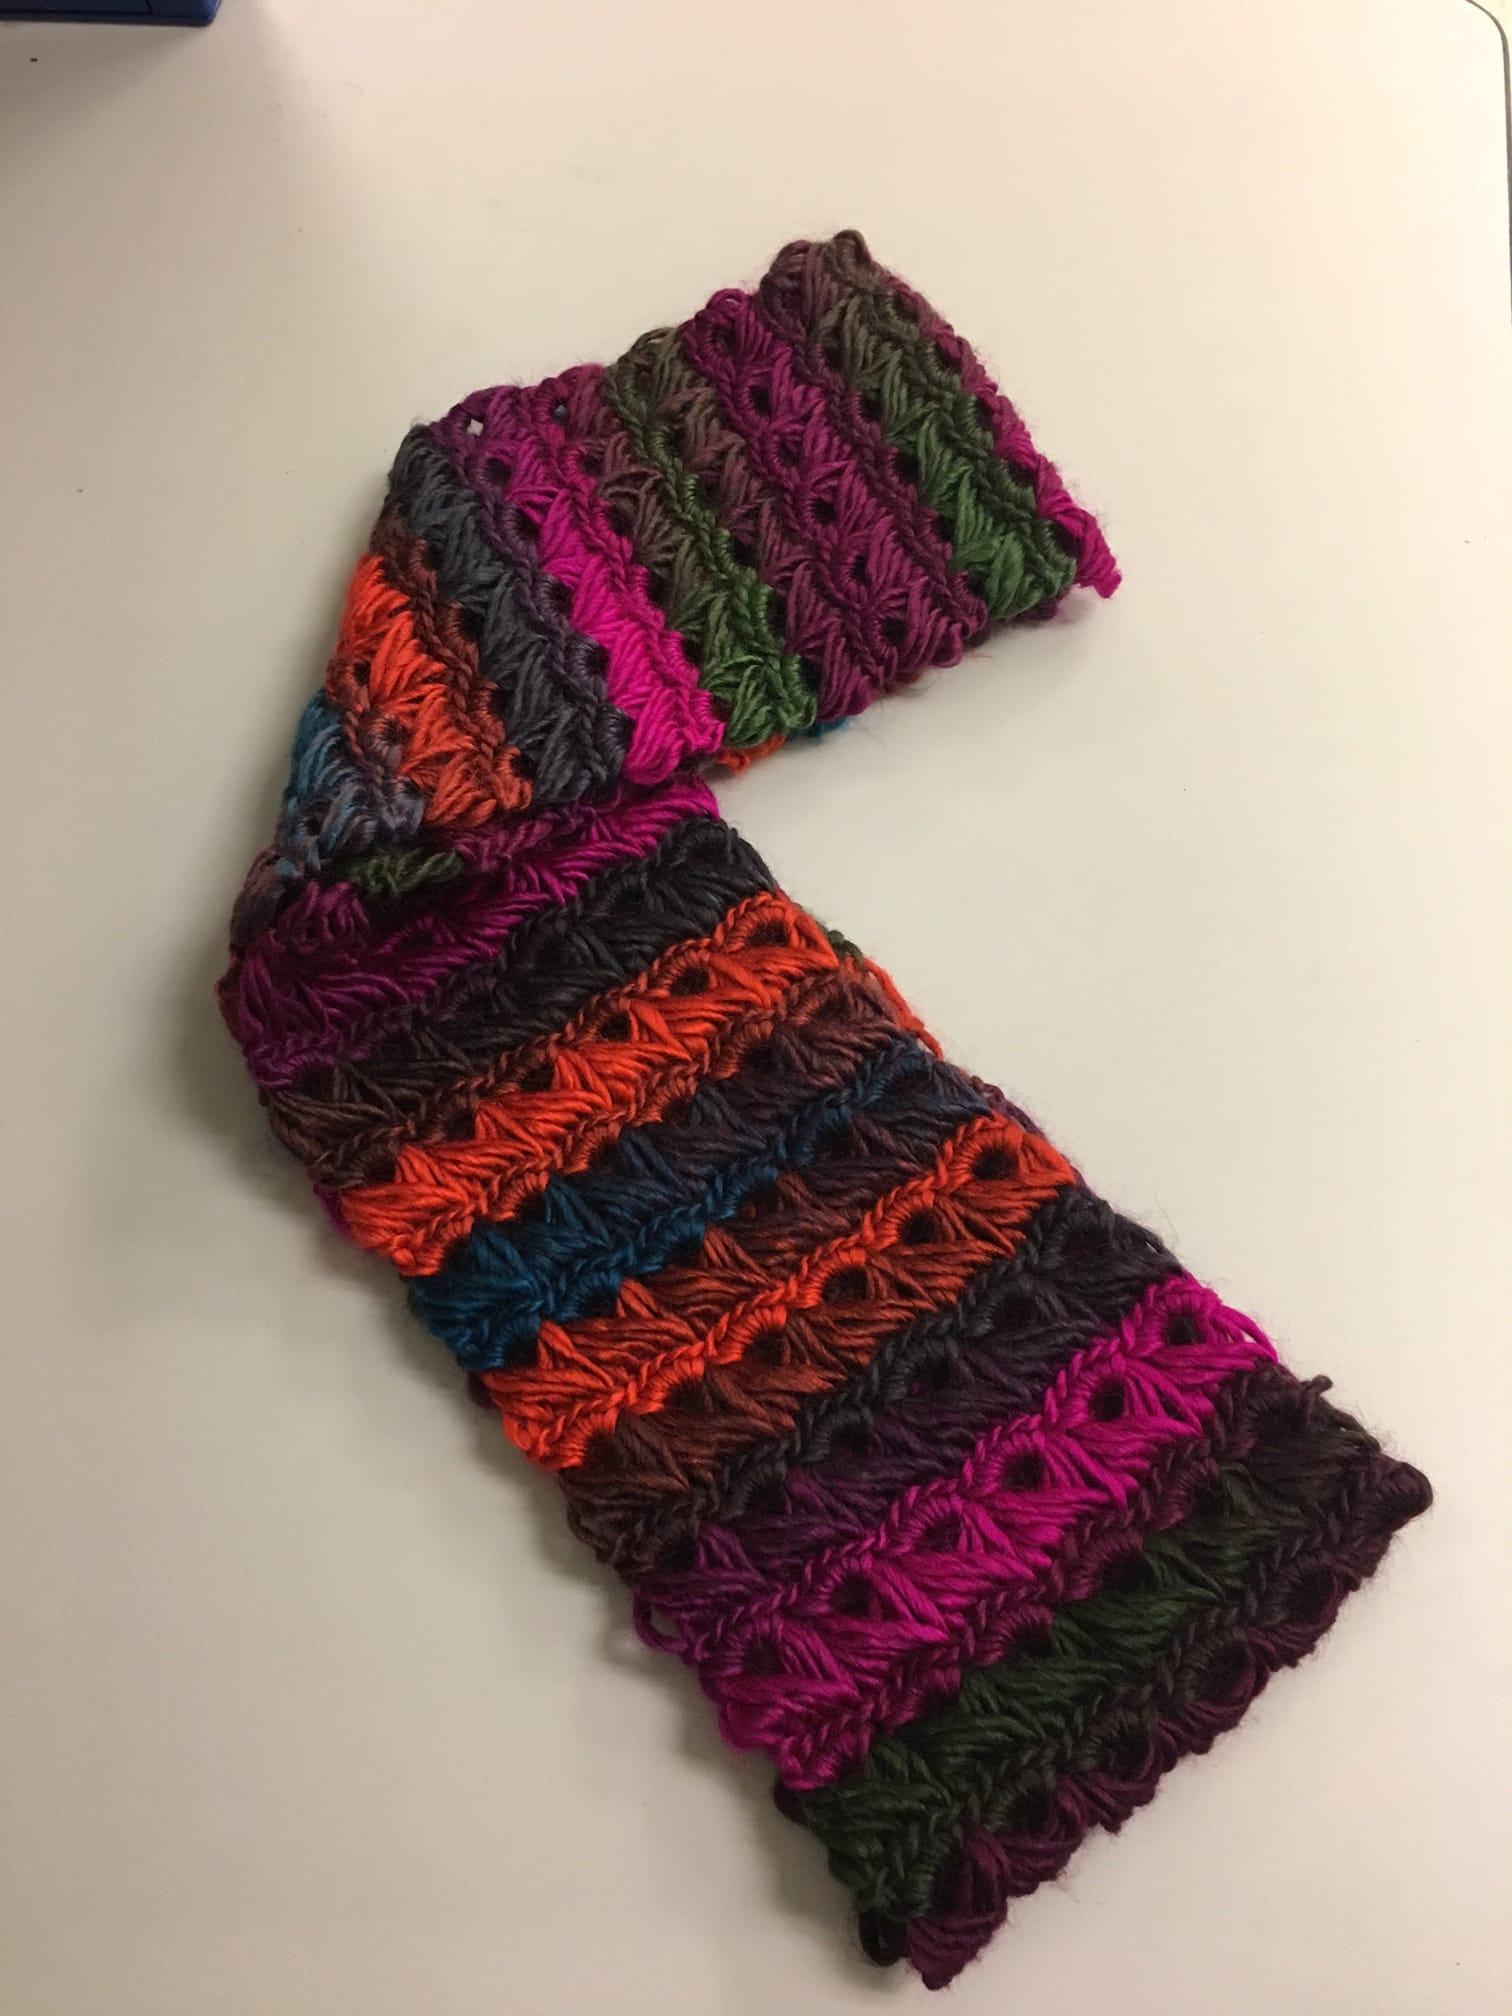 Crochet A Broomstick Lace Infinity Scarf By Mustangsaguaro